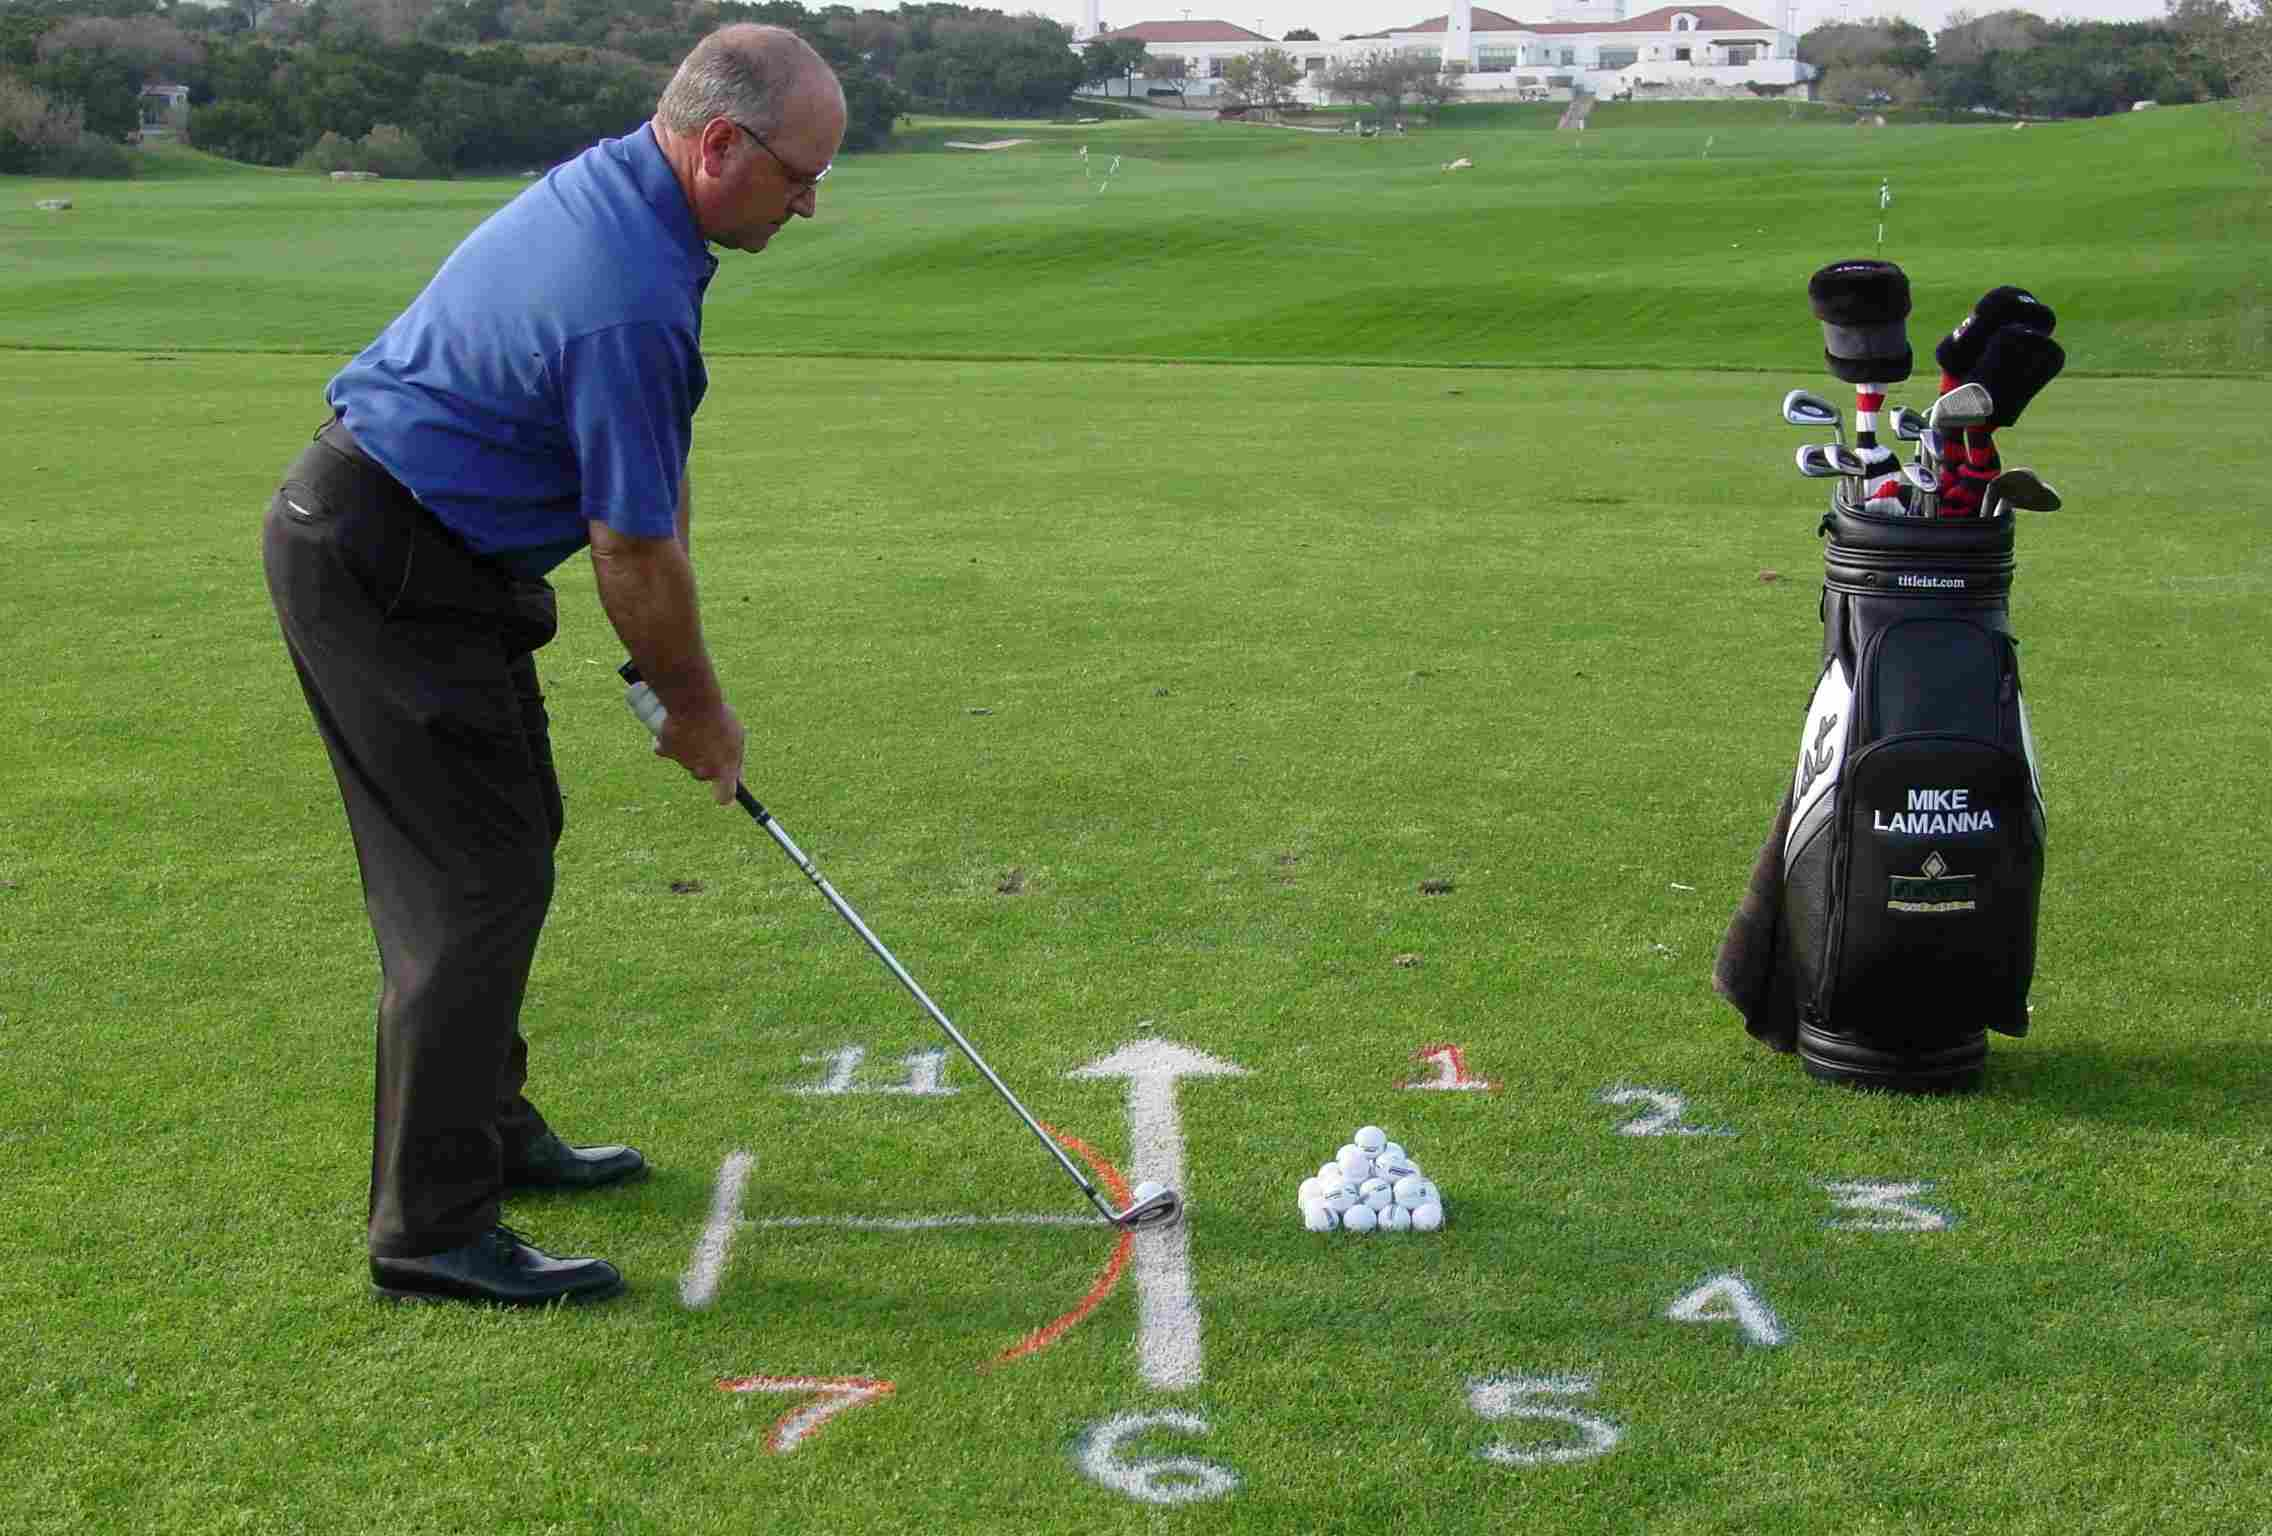 Step 1 in a great golf stance is understanding how important it is - and proper alignment